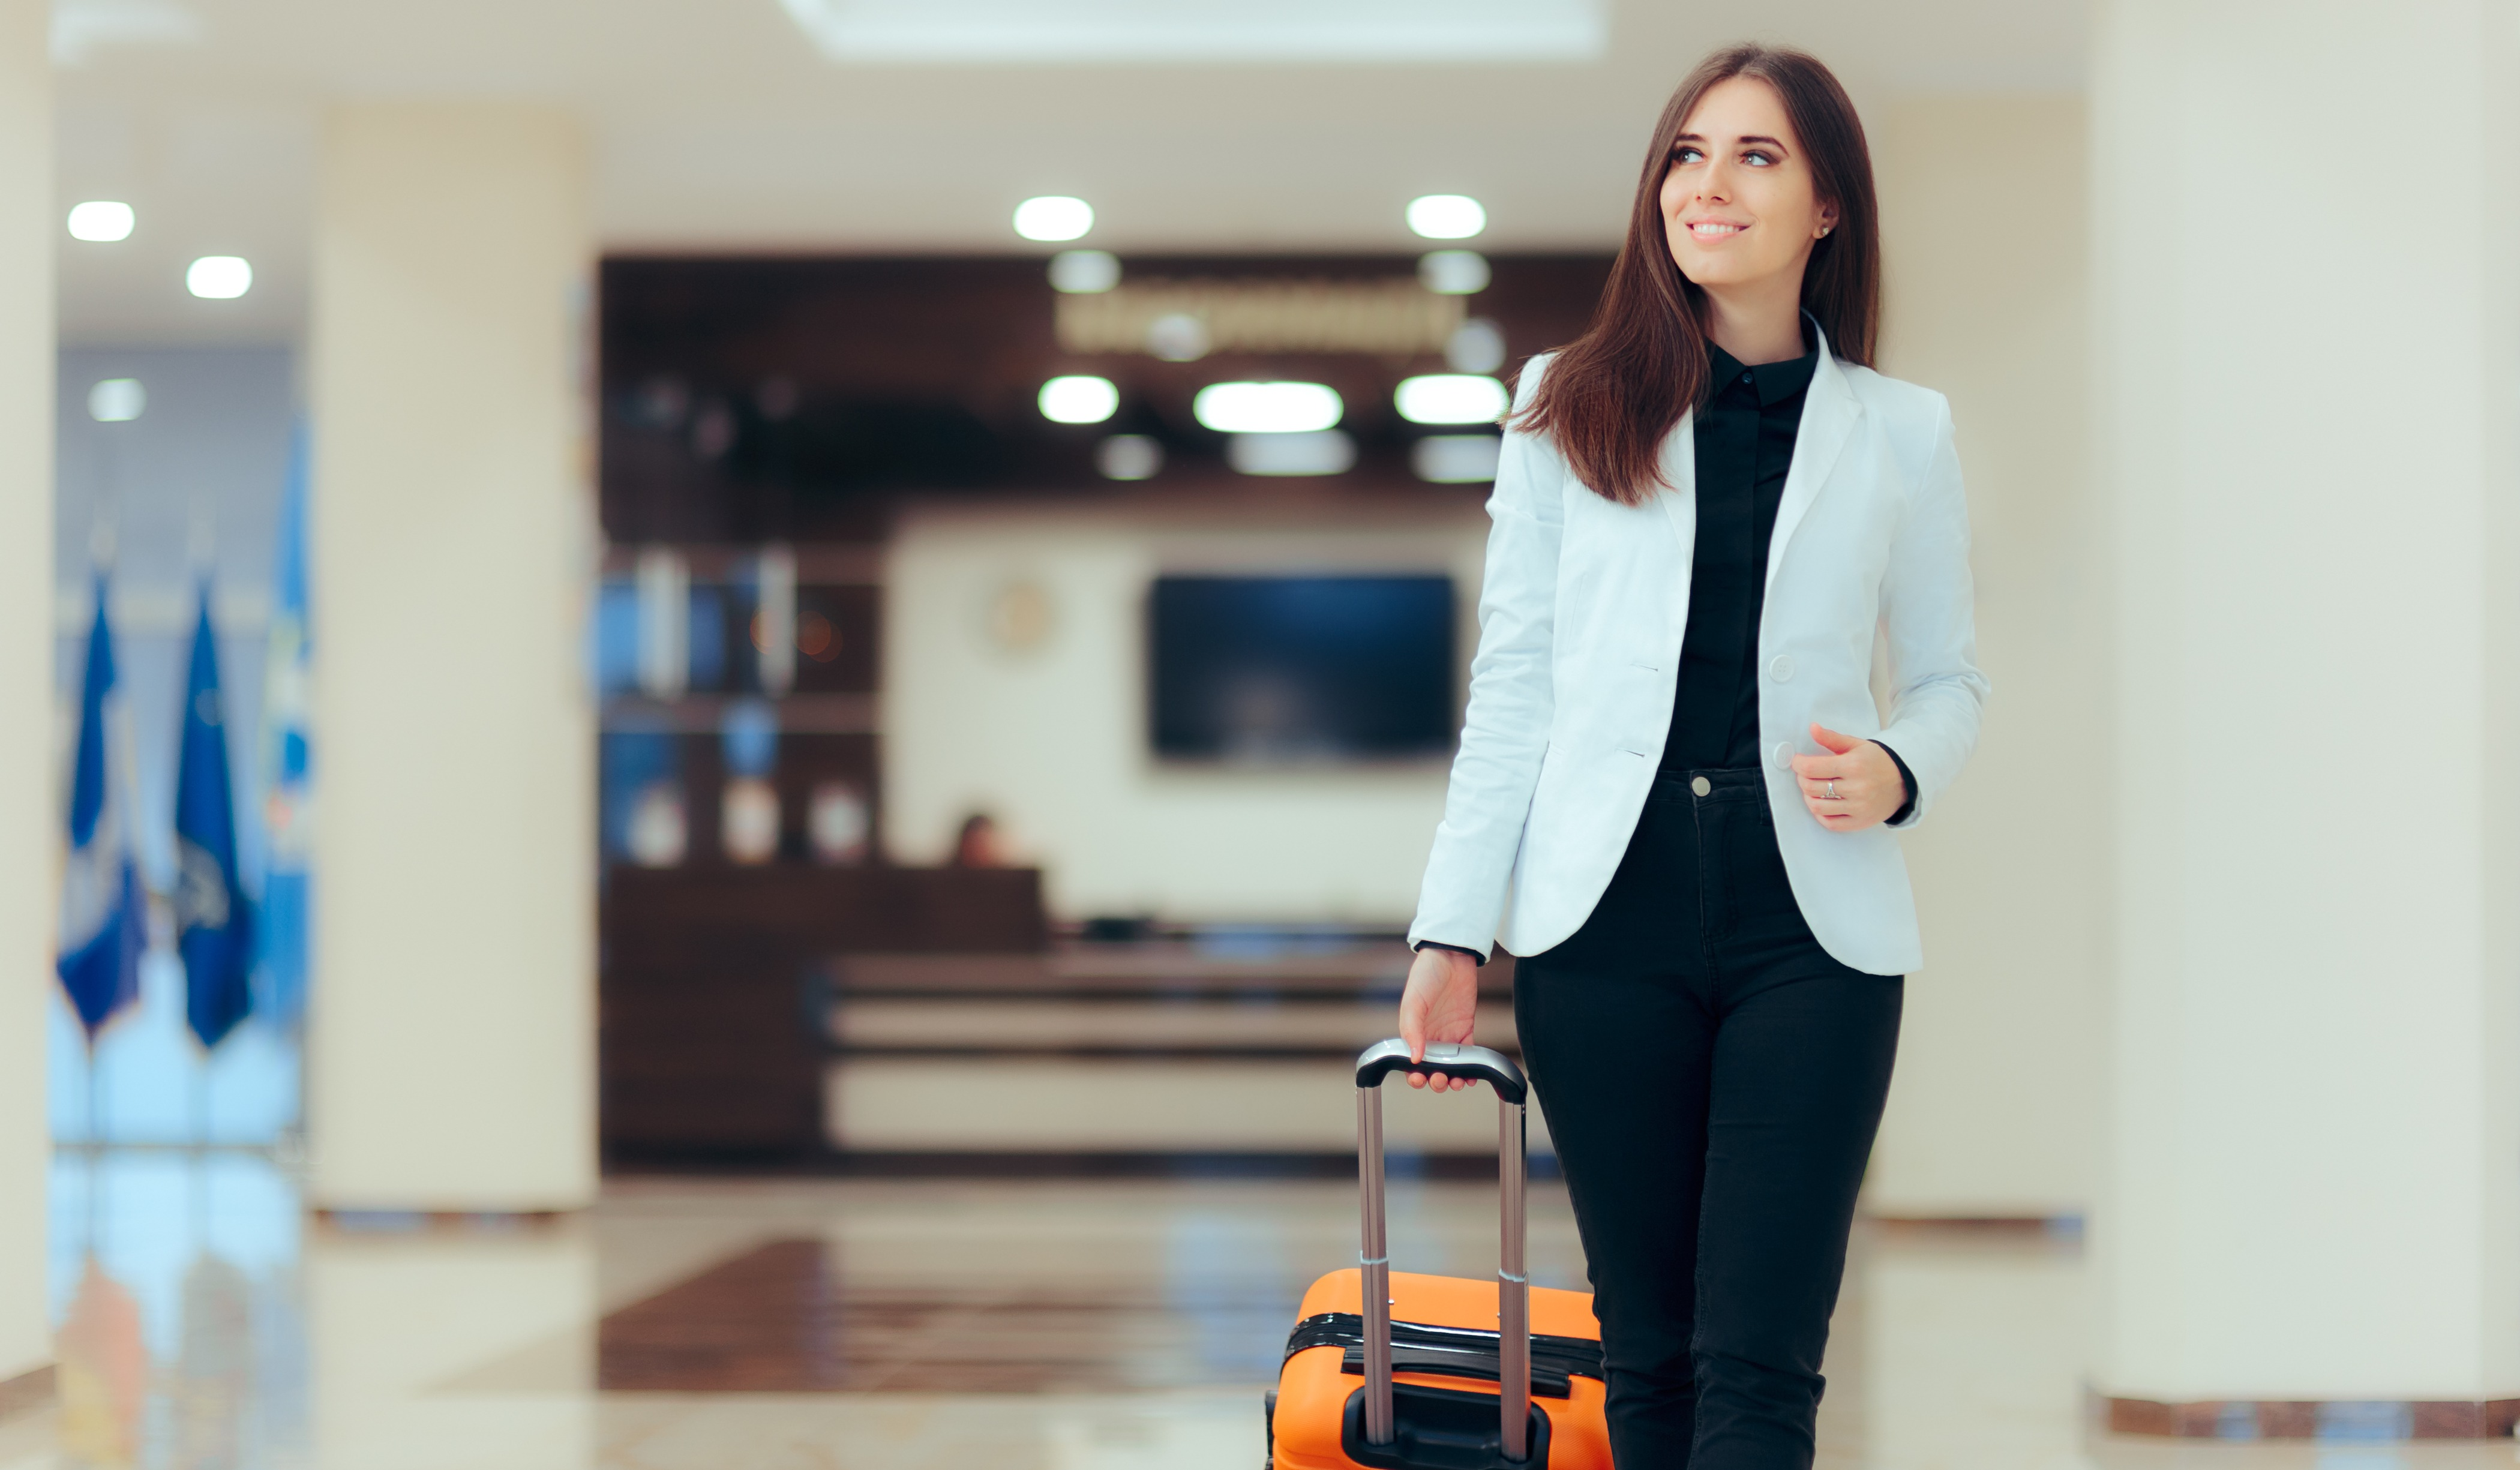 Hotel VoIP Systems Come Down to Simplicity and Control